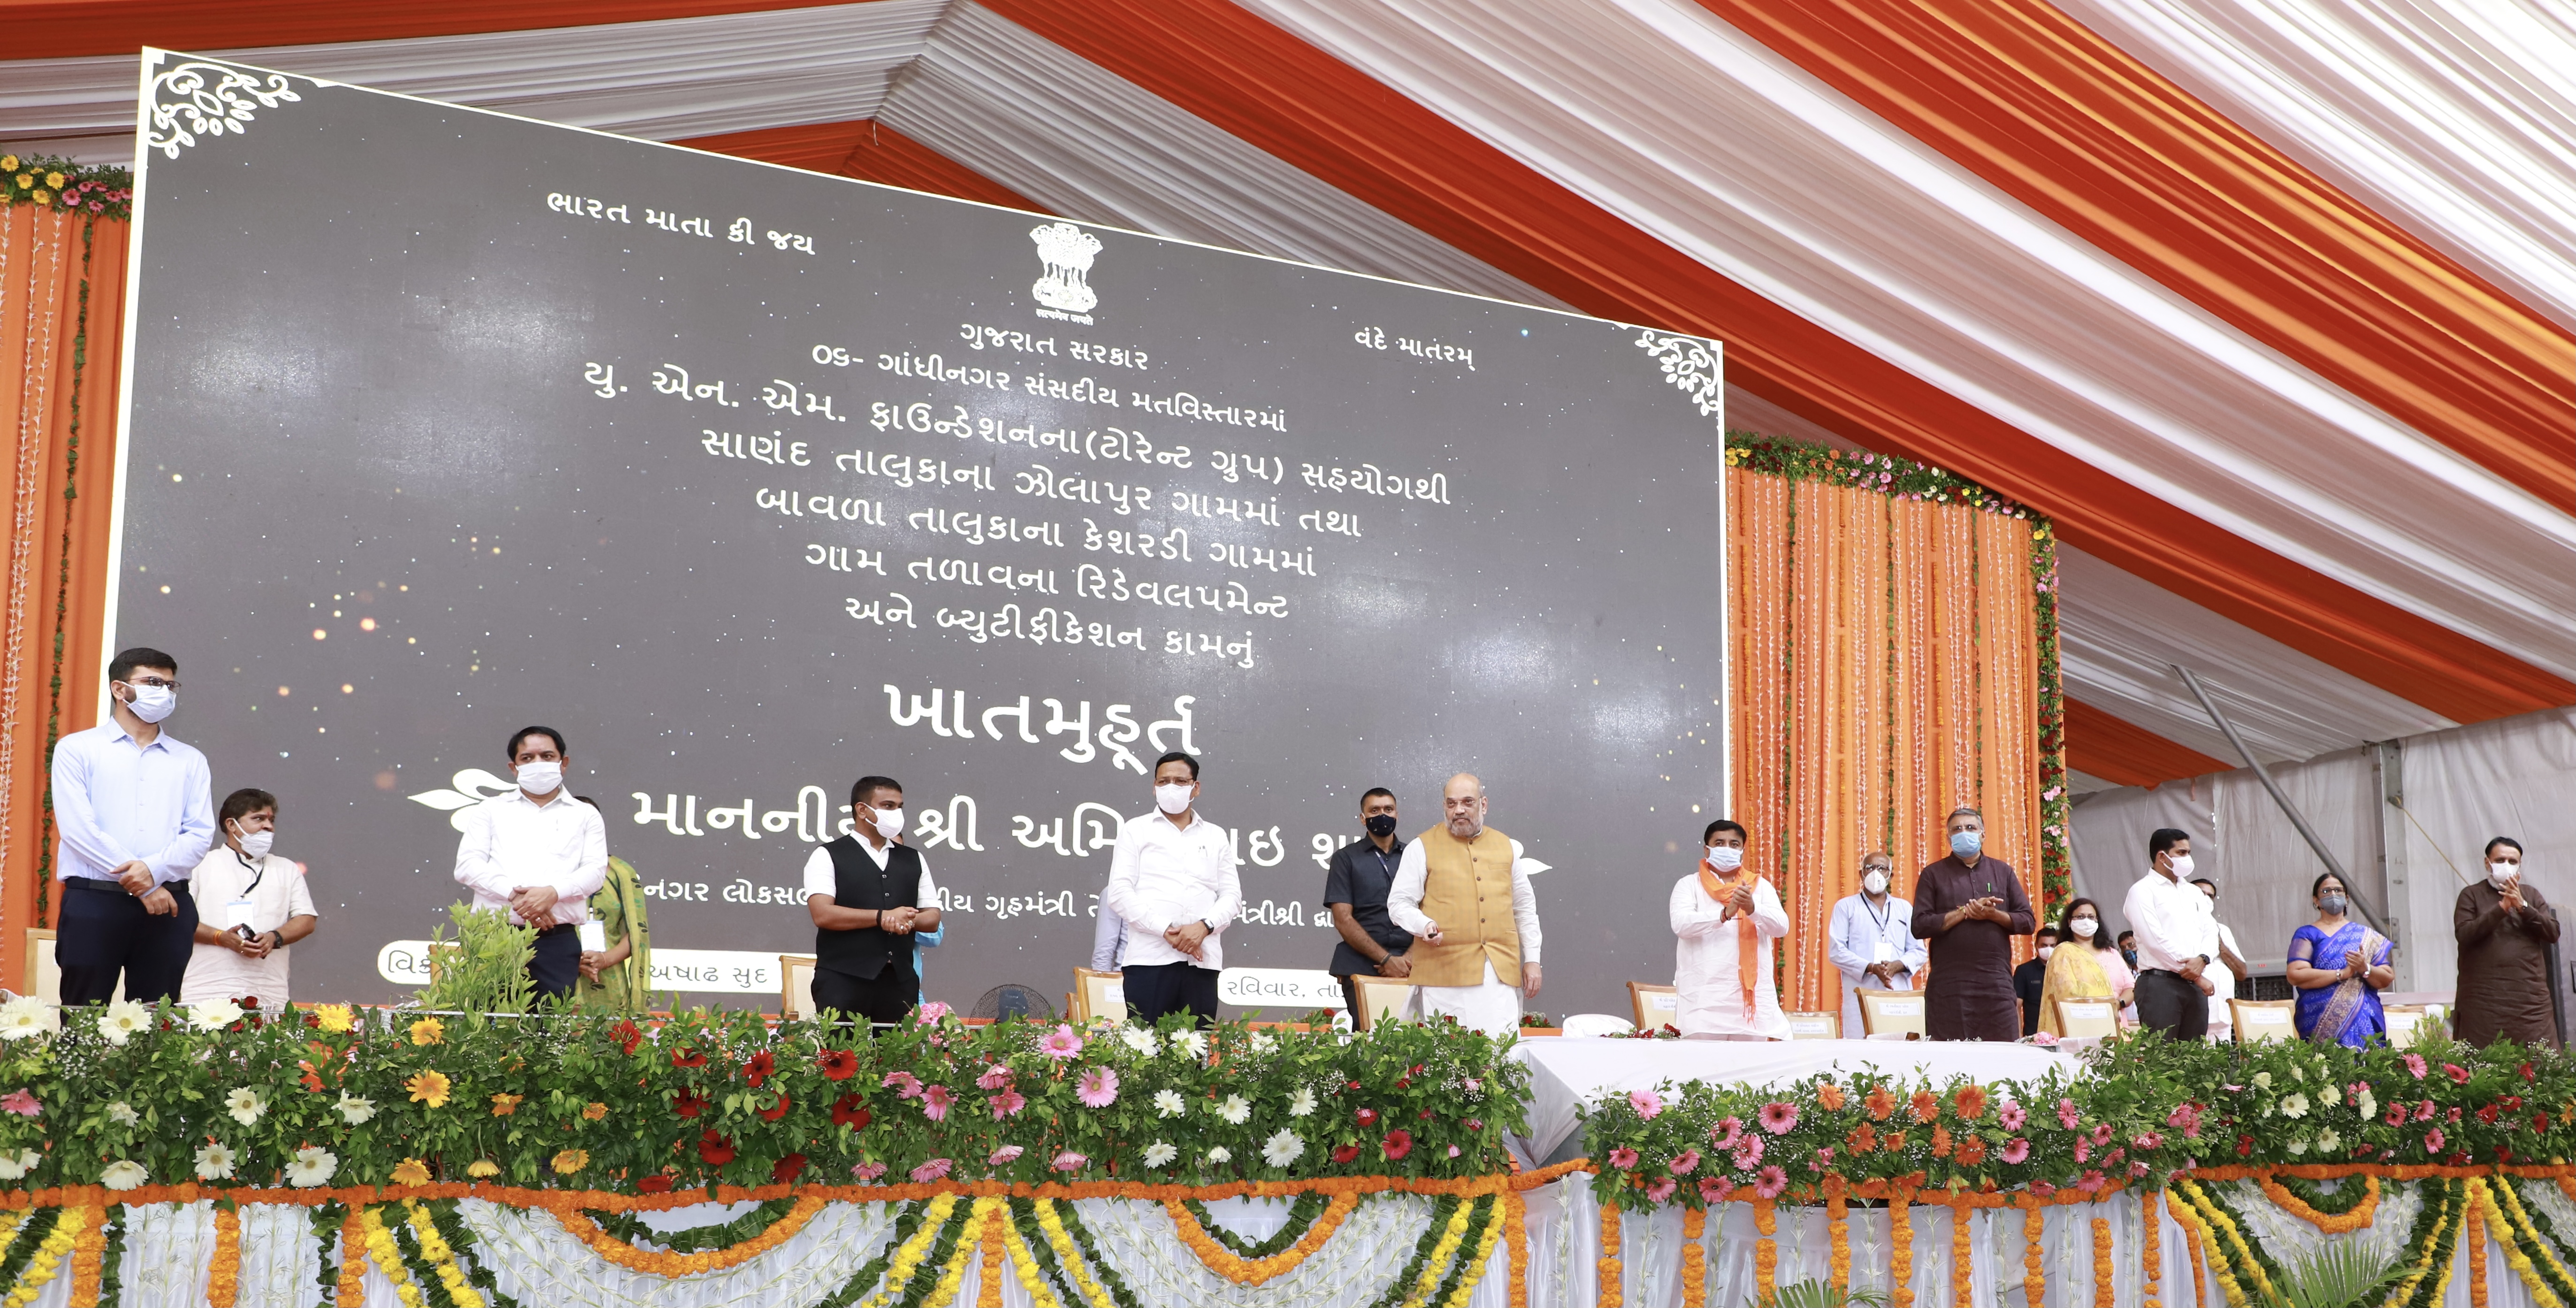 Shri Amit Shah inaugurating and laying foundation stone of various development projects